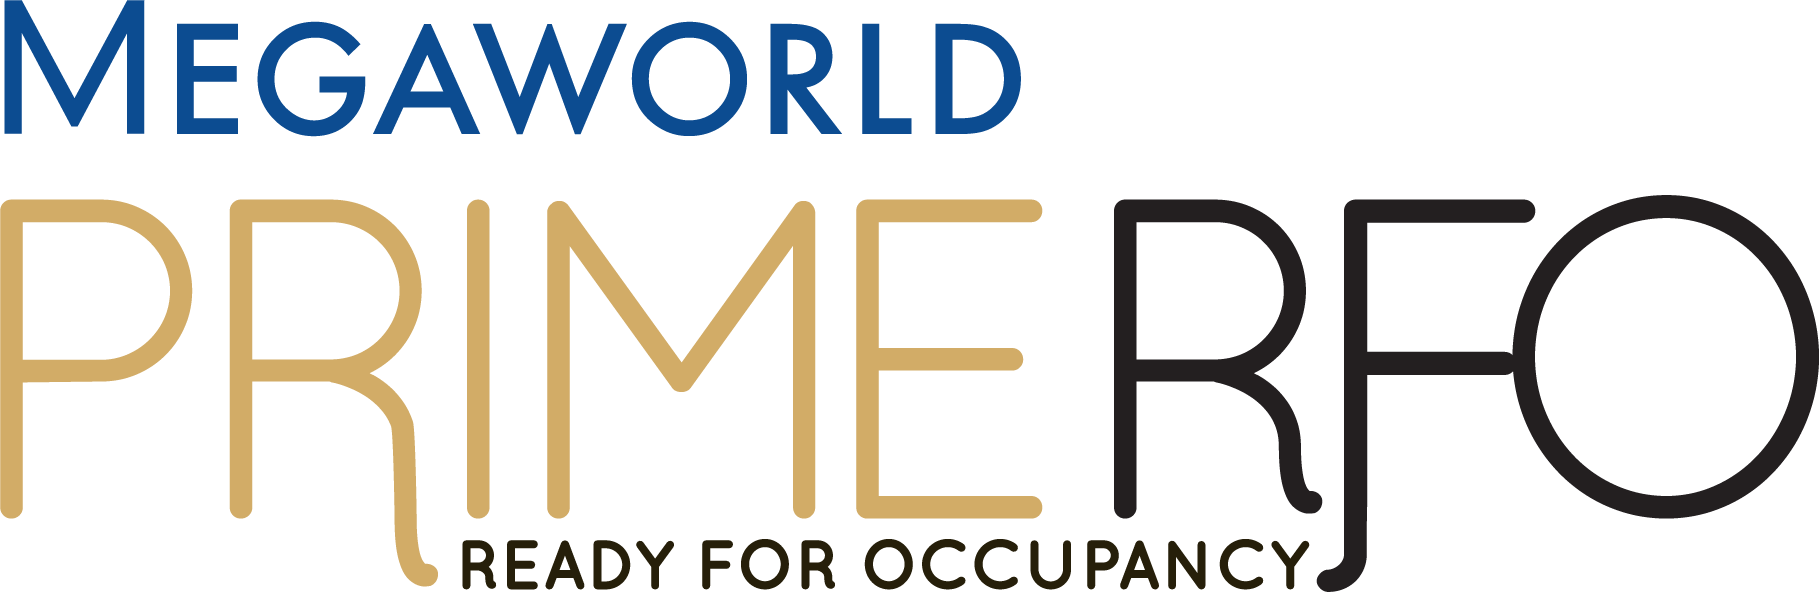 Megaworld Prime RFO-Megaworld Ready-For-Occupancy Condo Properties